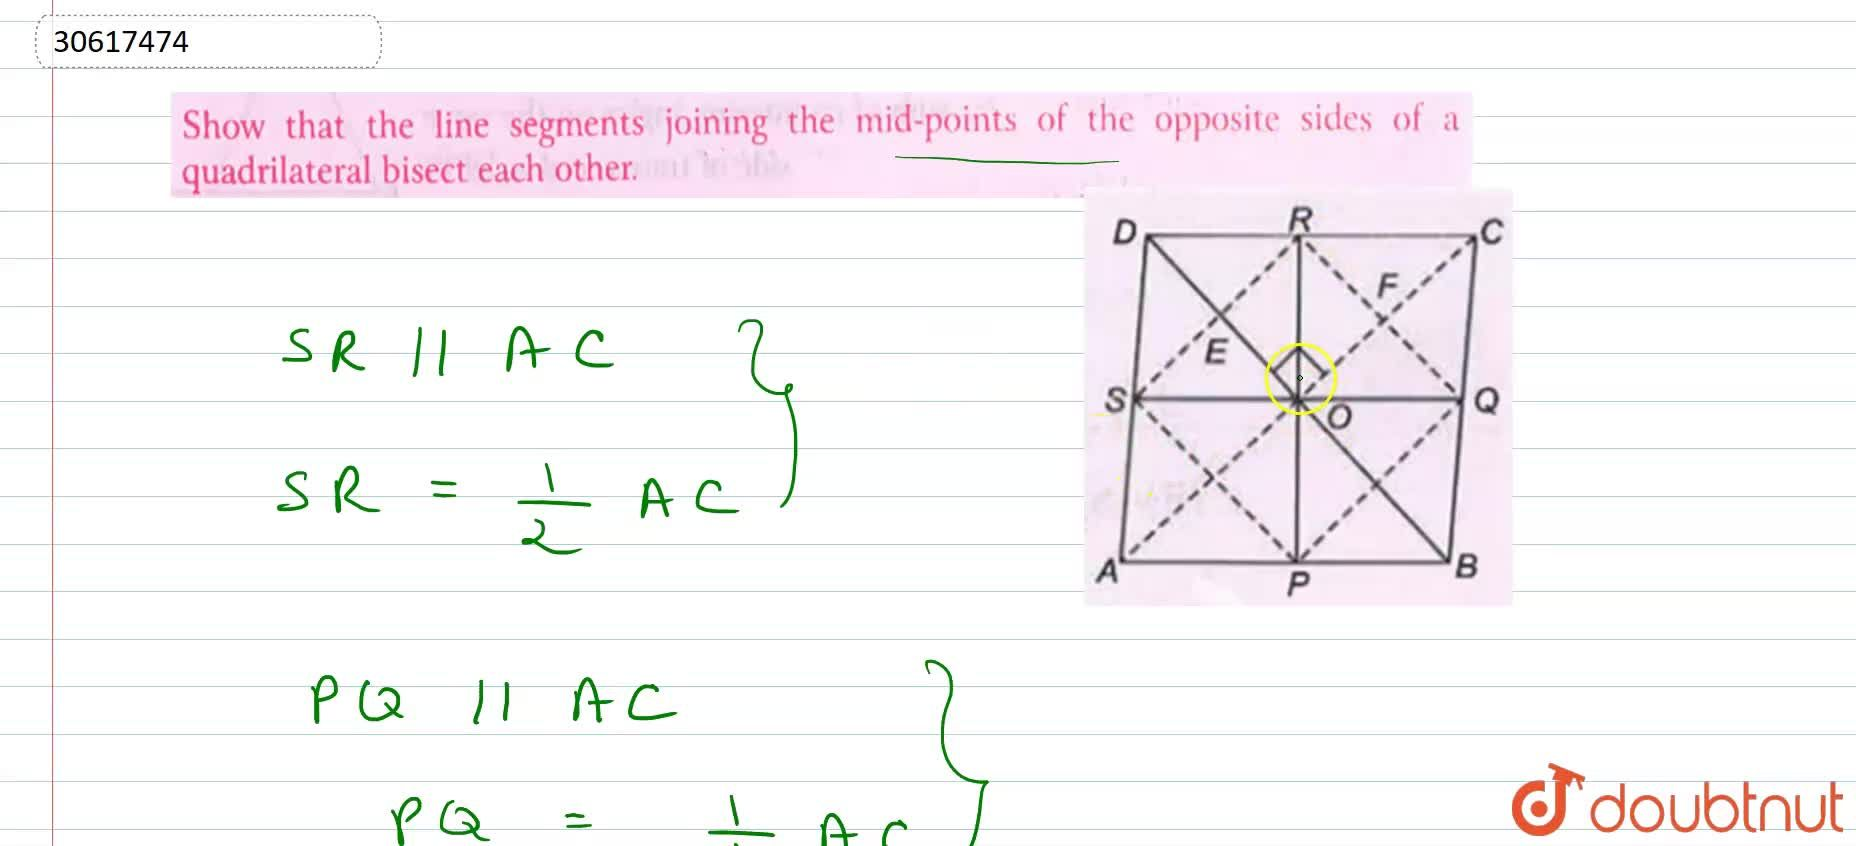 Solution for Show that the line segments joining the mid-points